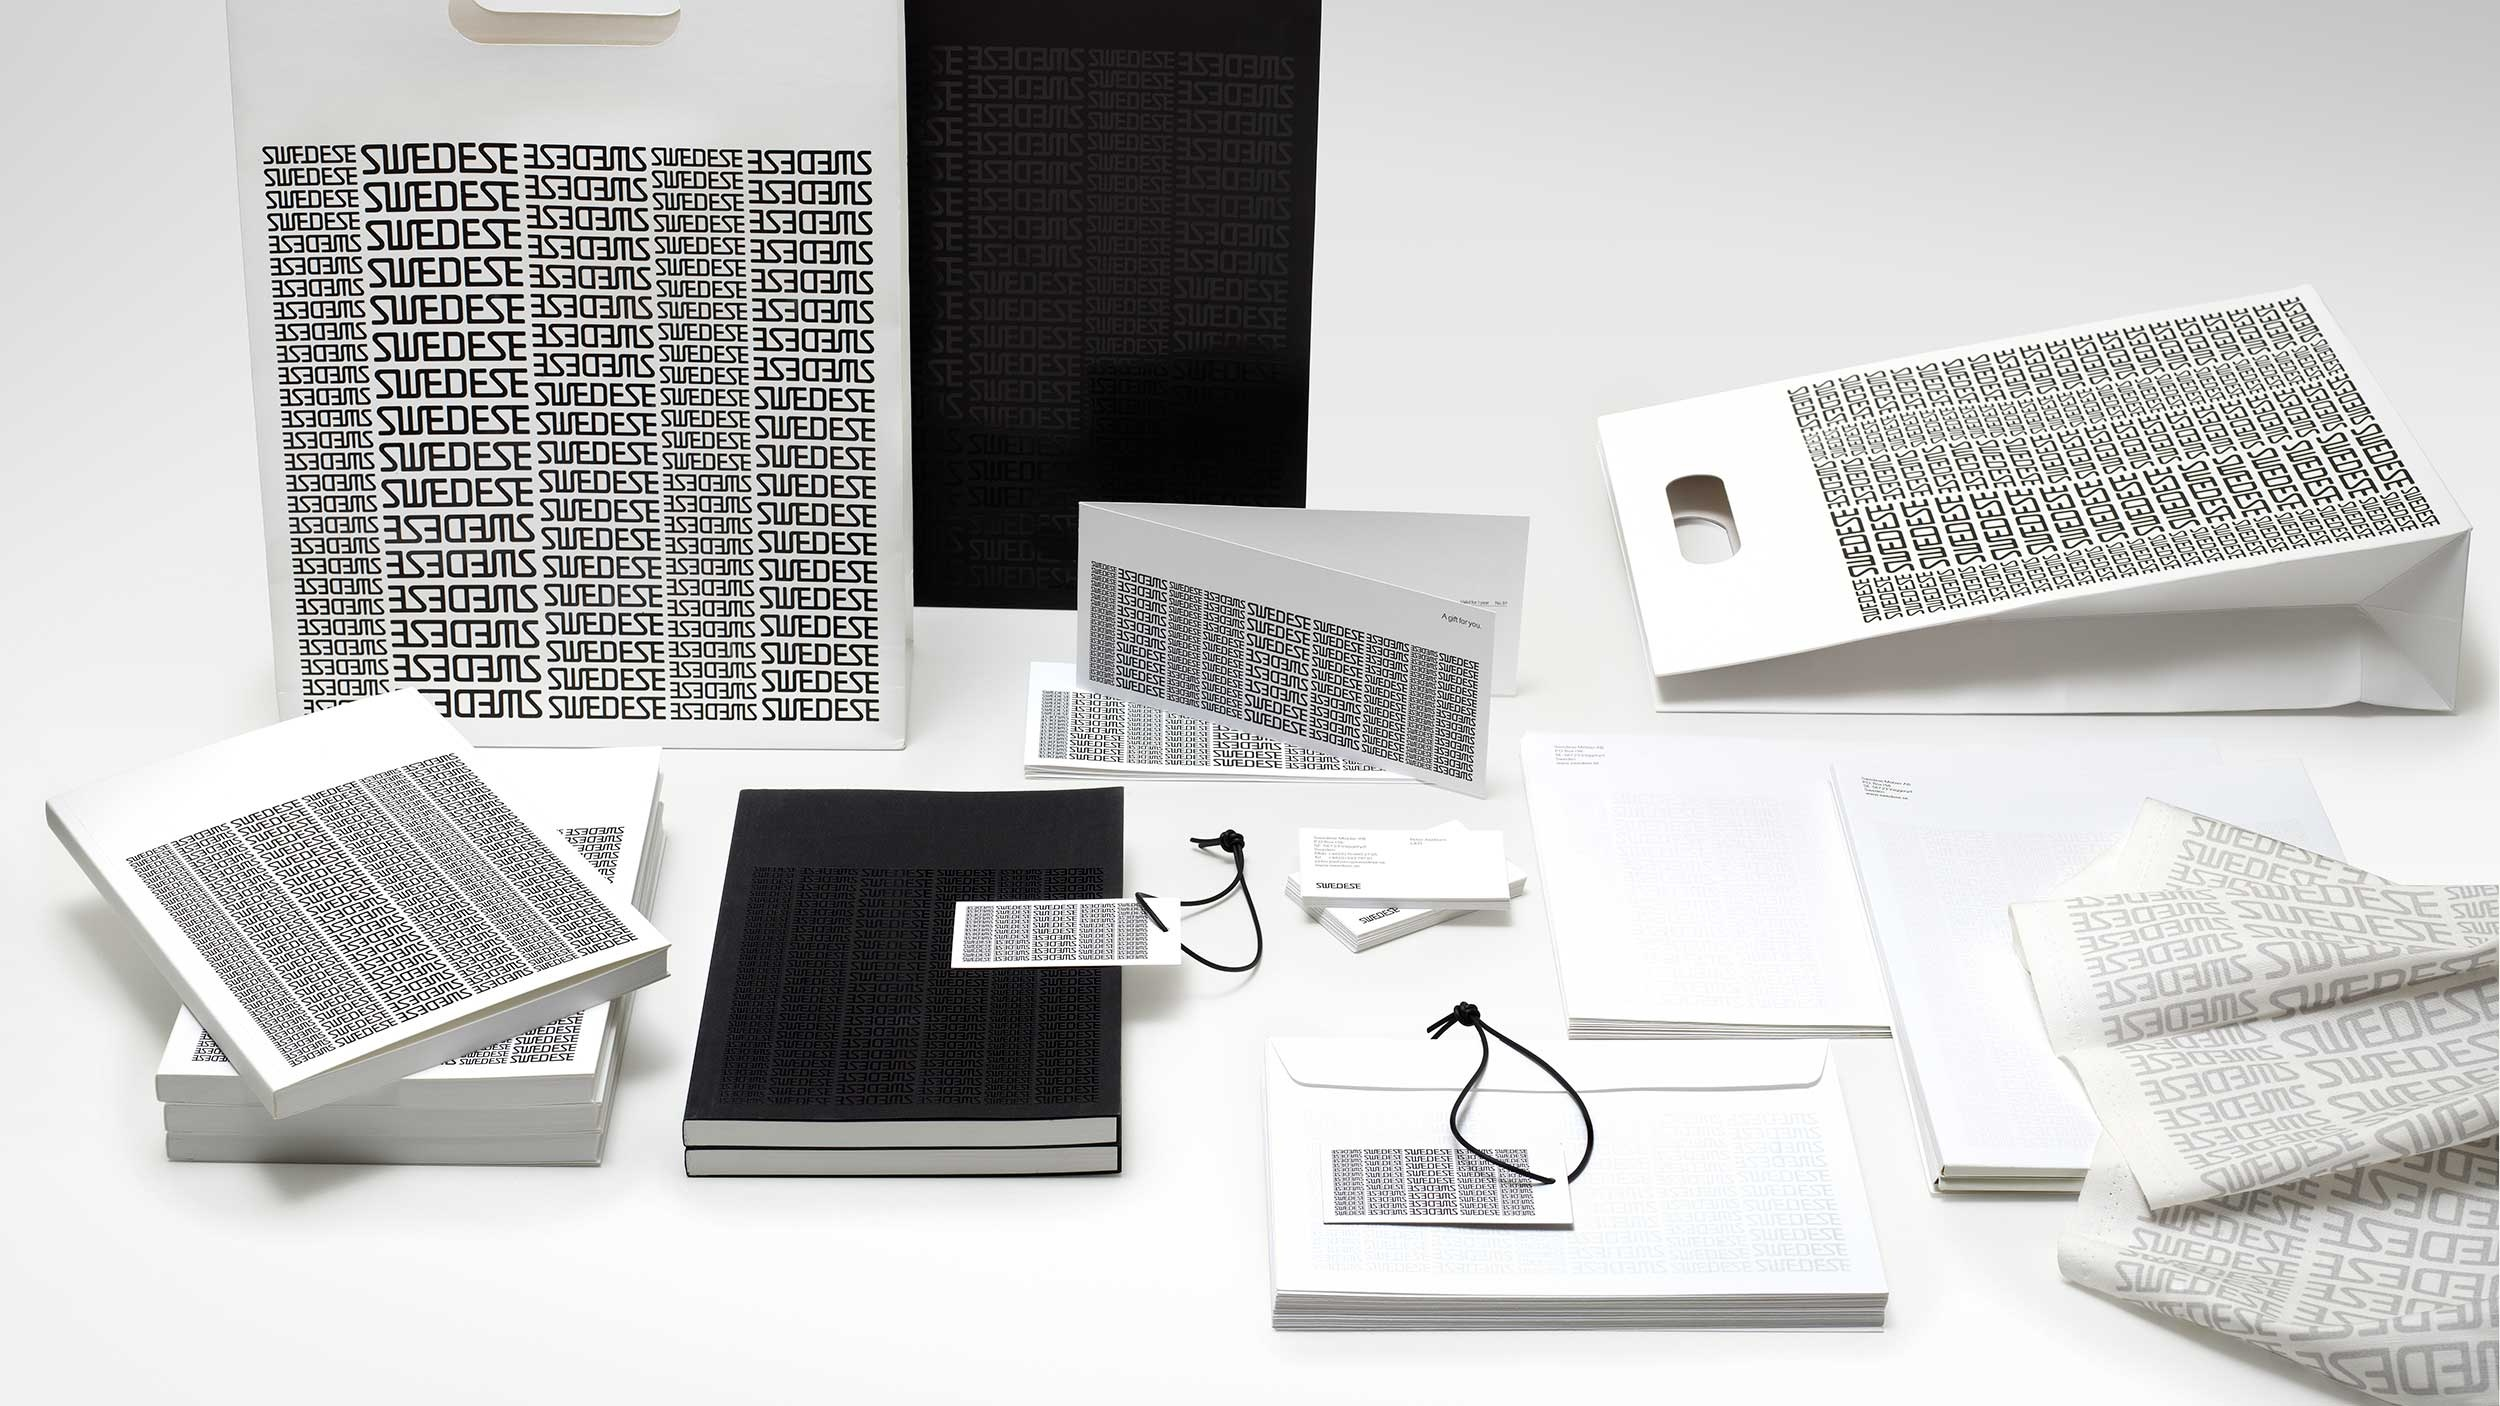 Swedese – graphic identity